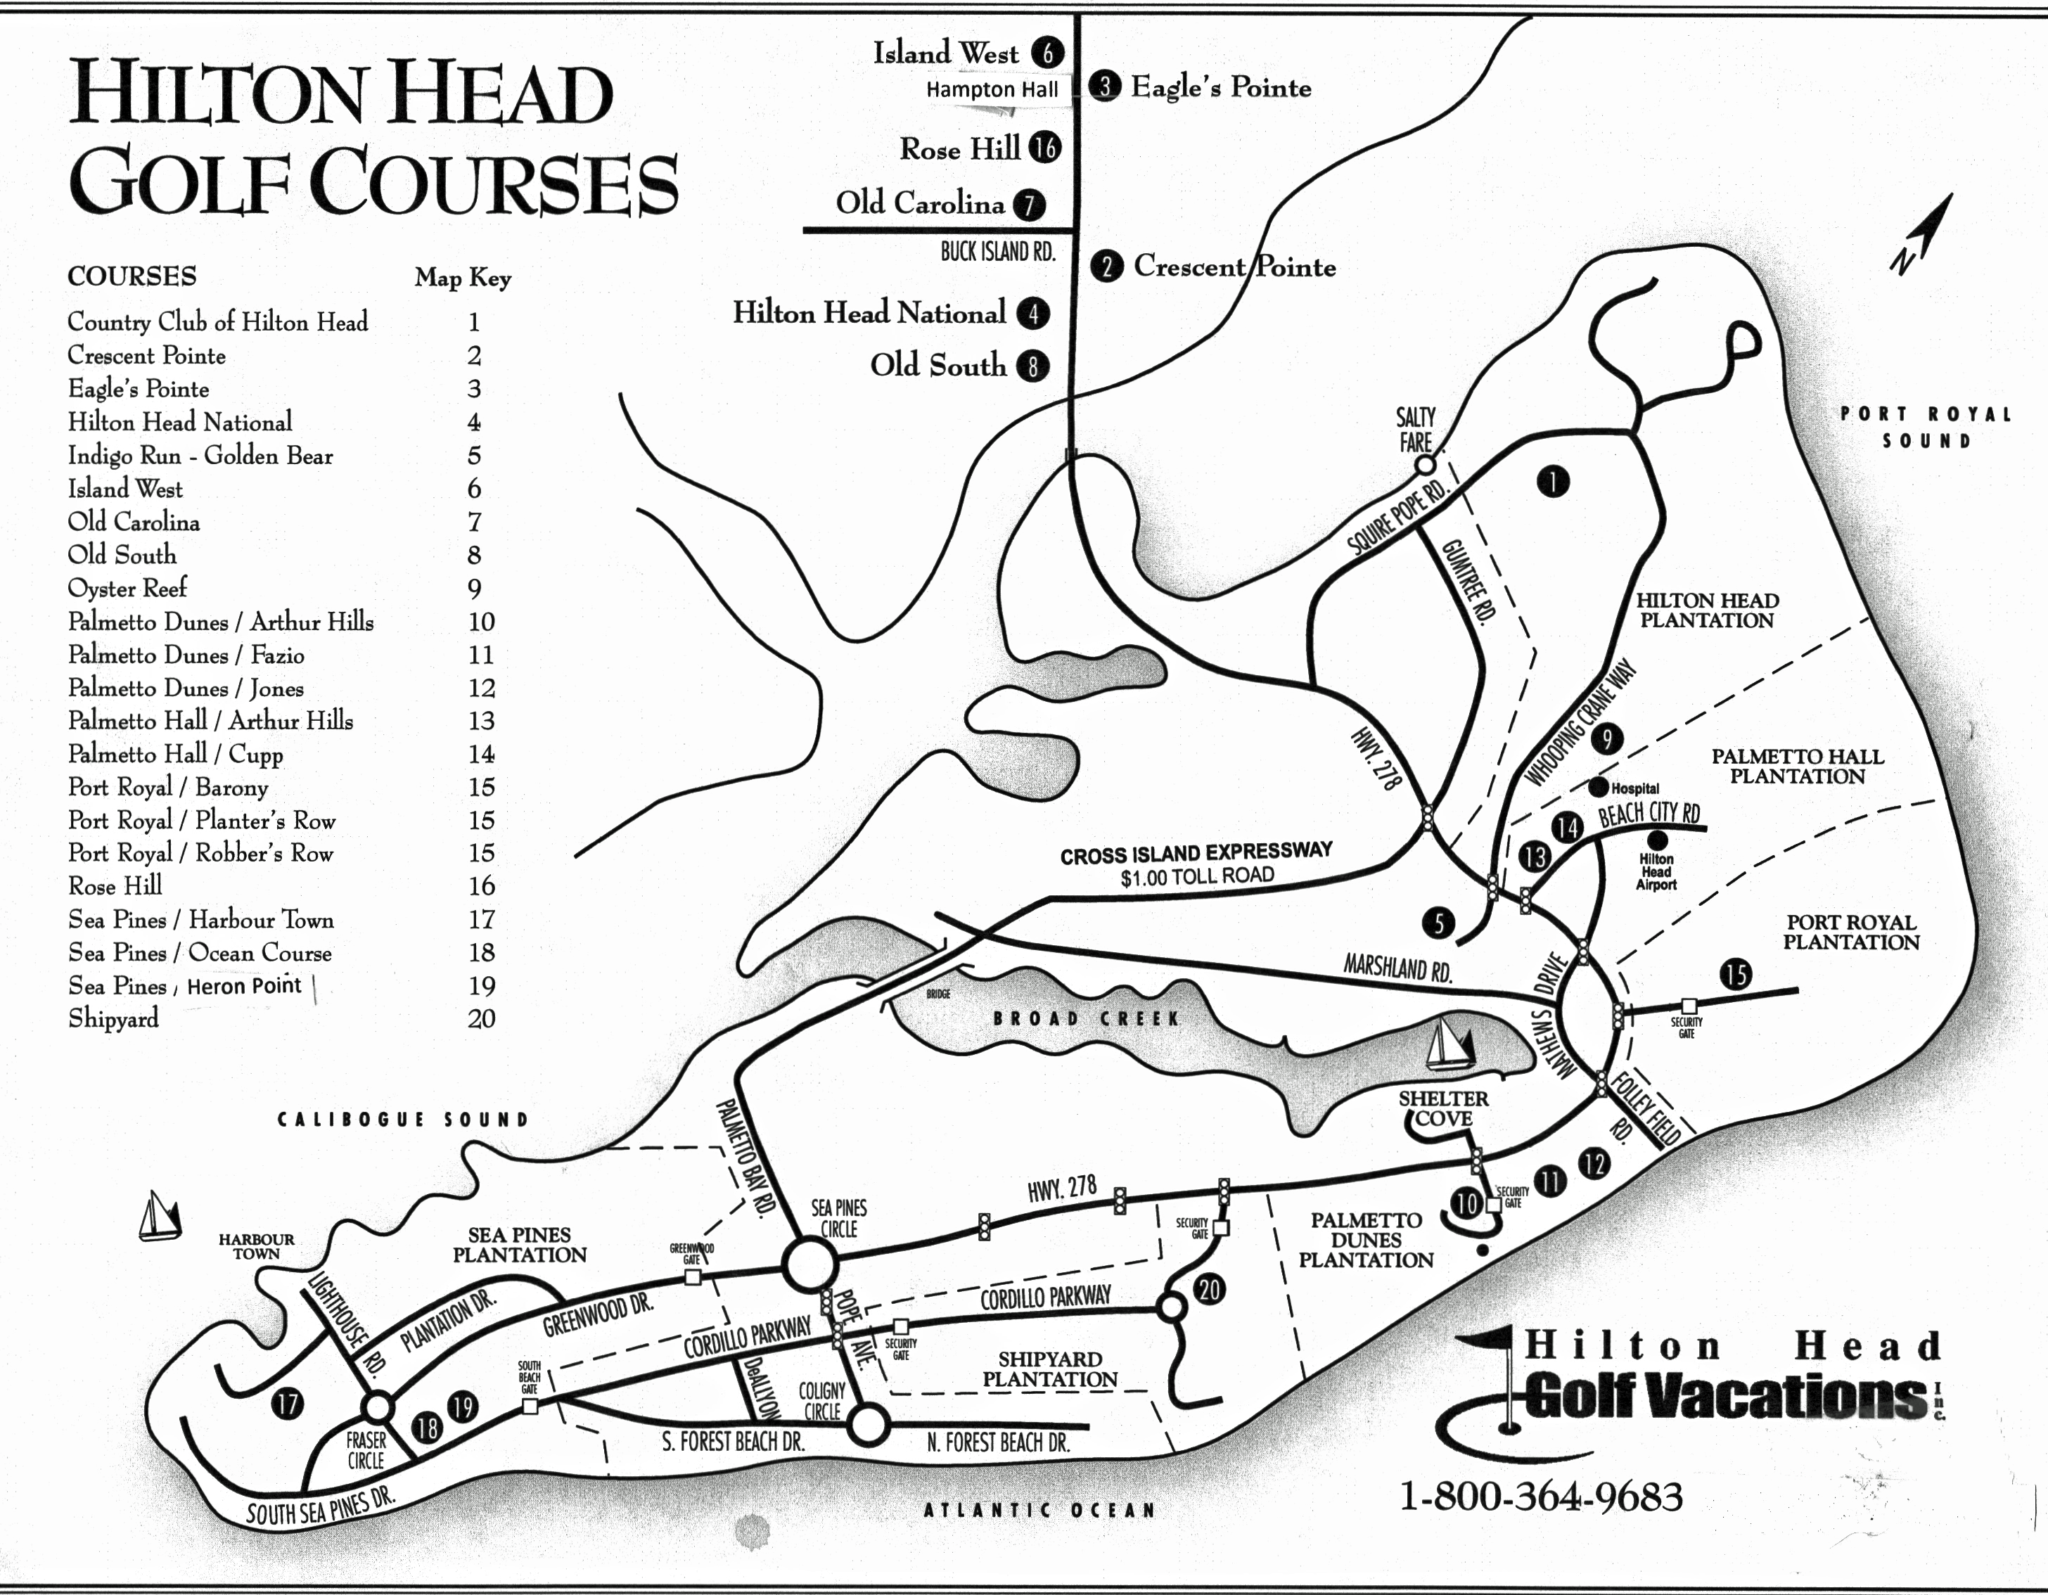 an introduction to the hilton head island south Complete travel and vacation information for hilton head island, south carolina with maps, photos, sightseeing, hotel reservations and more.